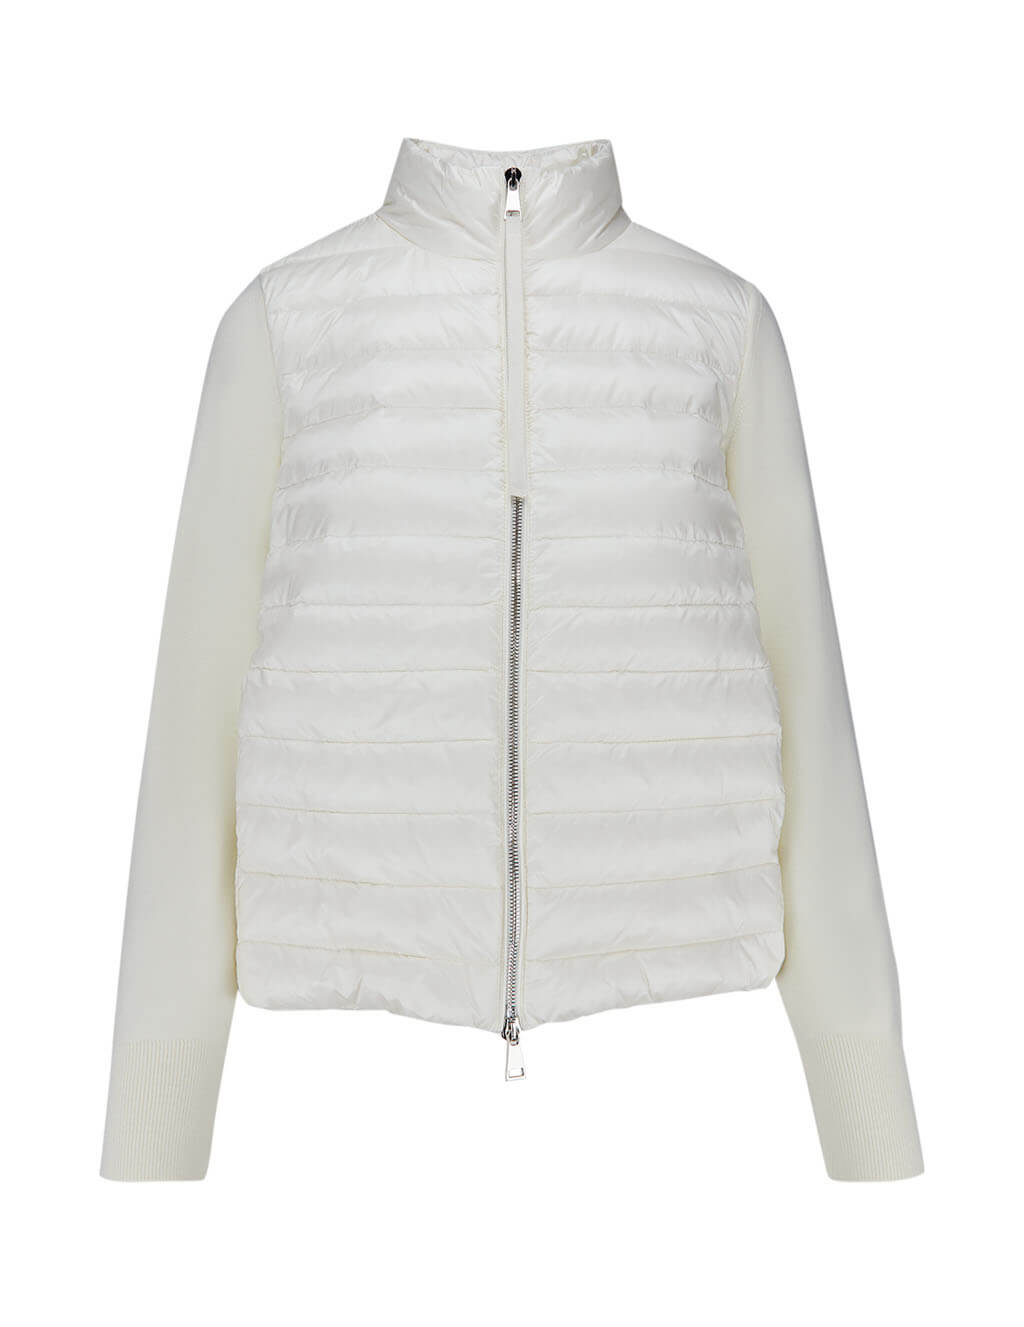 Moncler Women's White Lined Jumper 0939B50400A9001030